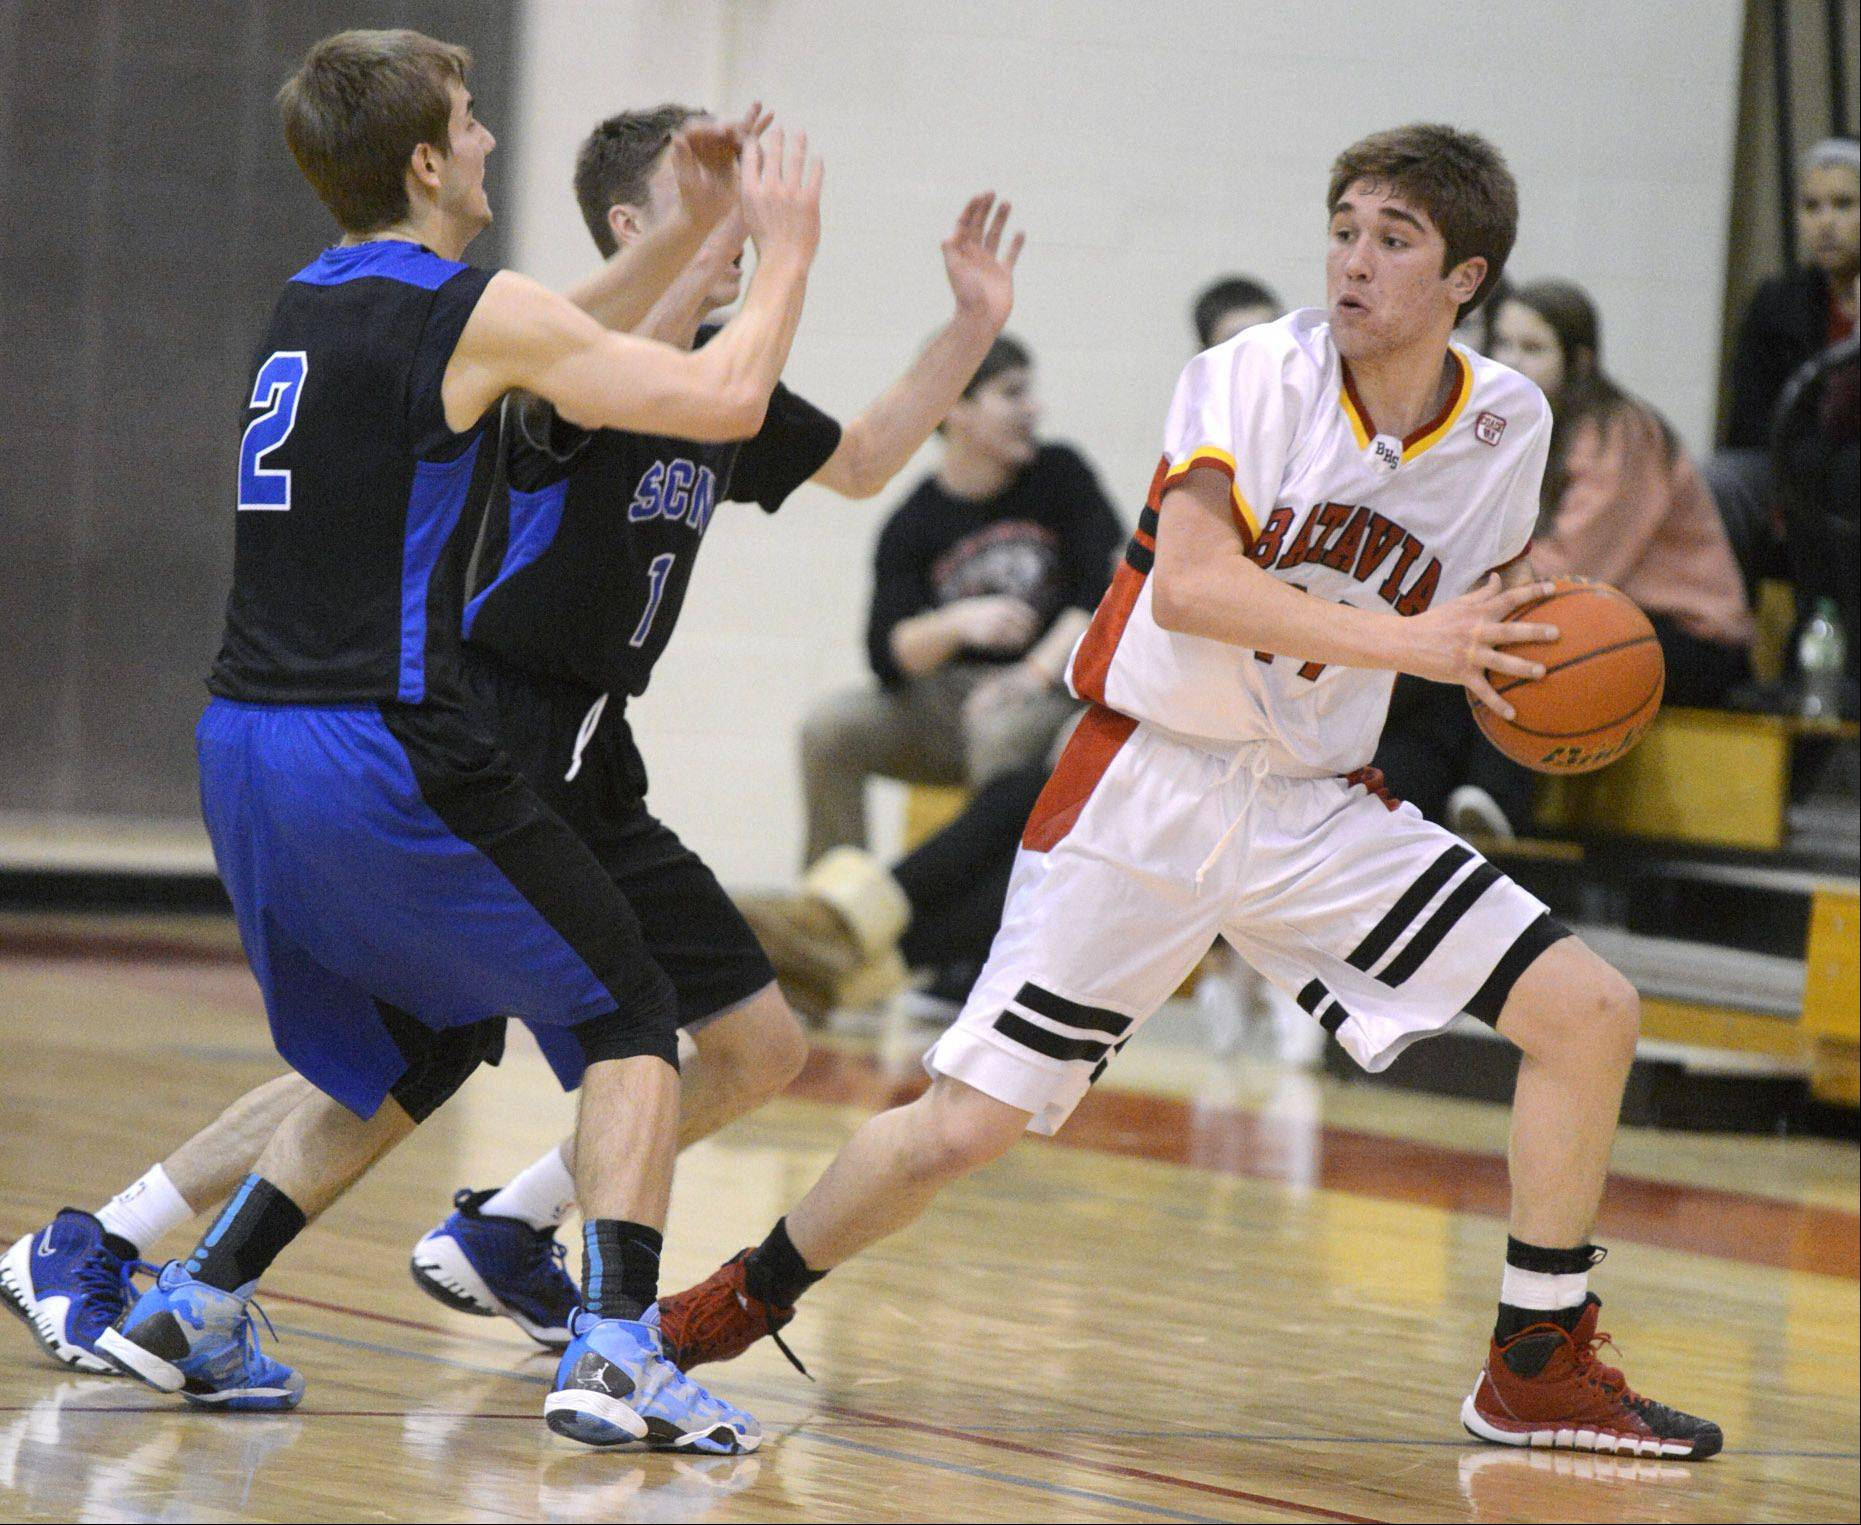 St. Charles North's Jake Ludwig and Alec Goetz swarm Batavia's Tyler Lovestrand in the second quarter.